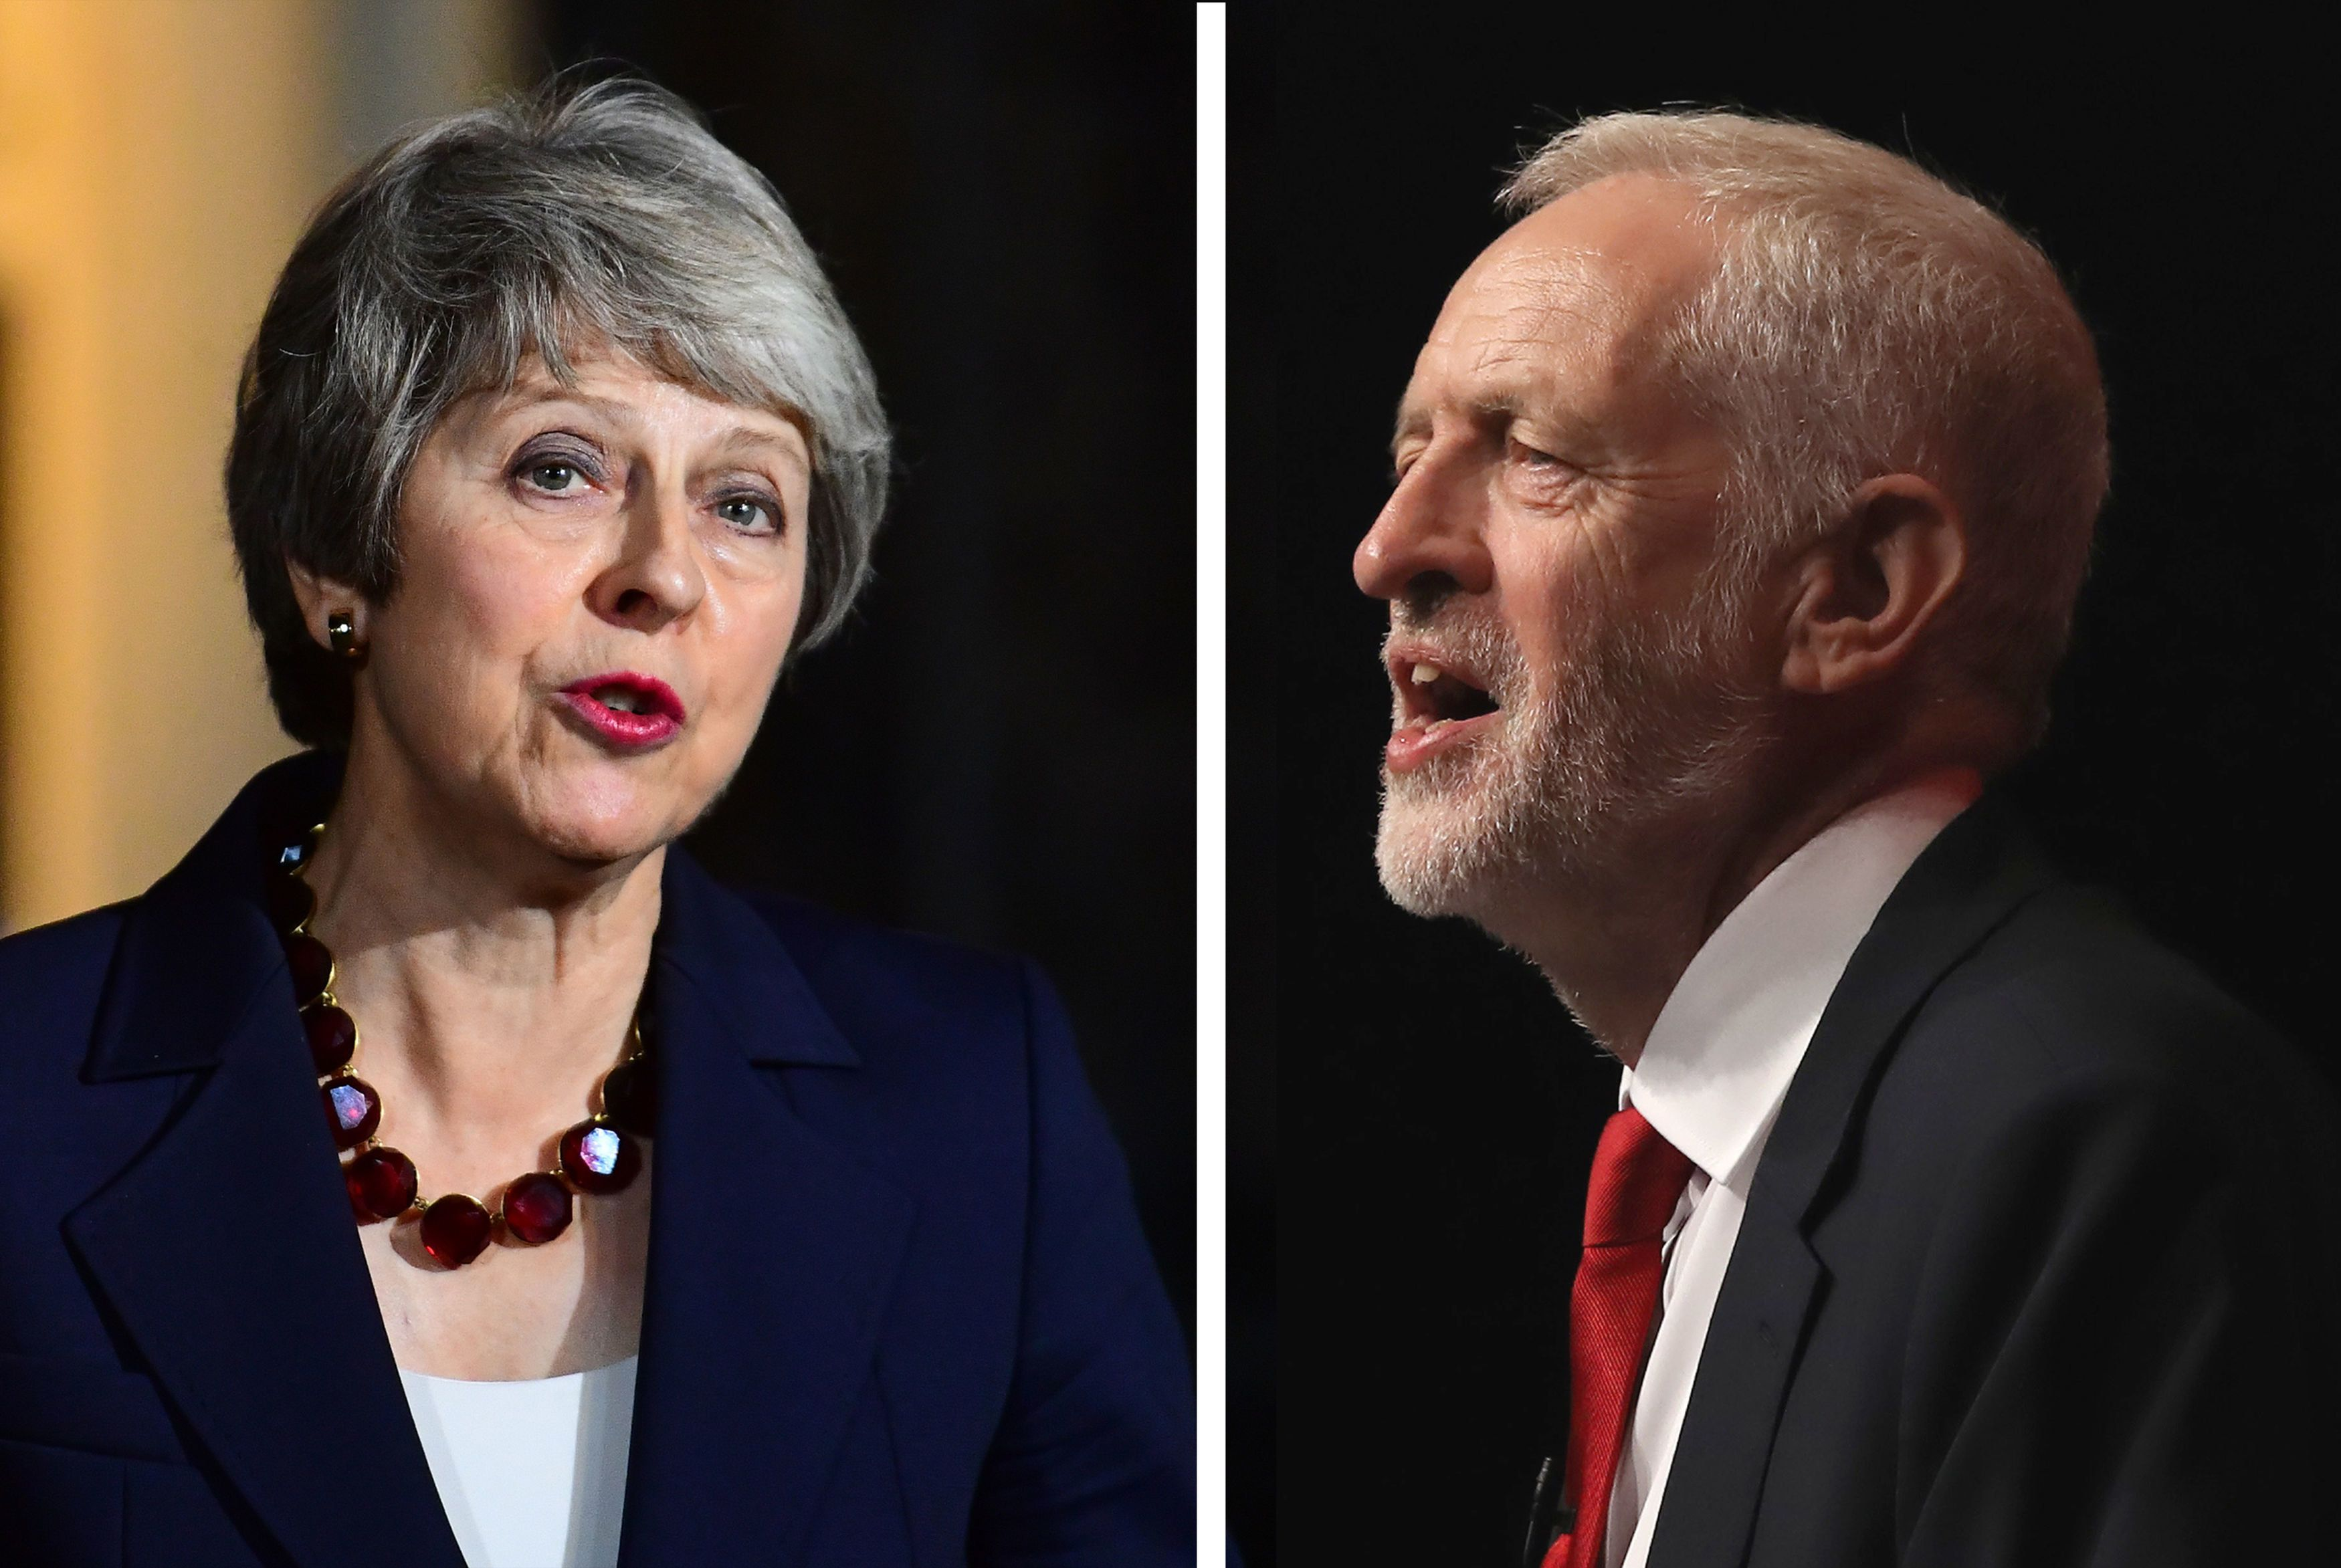 No Brexit TV Debates Before Vote As ITV Scraps Plans For Theresa May And Jeremy Corbyn